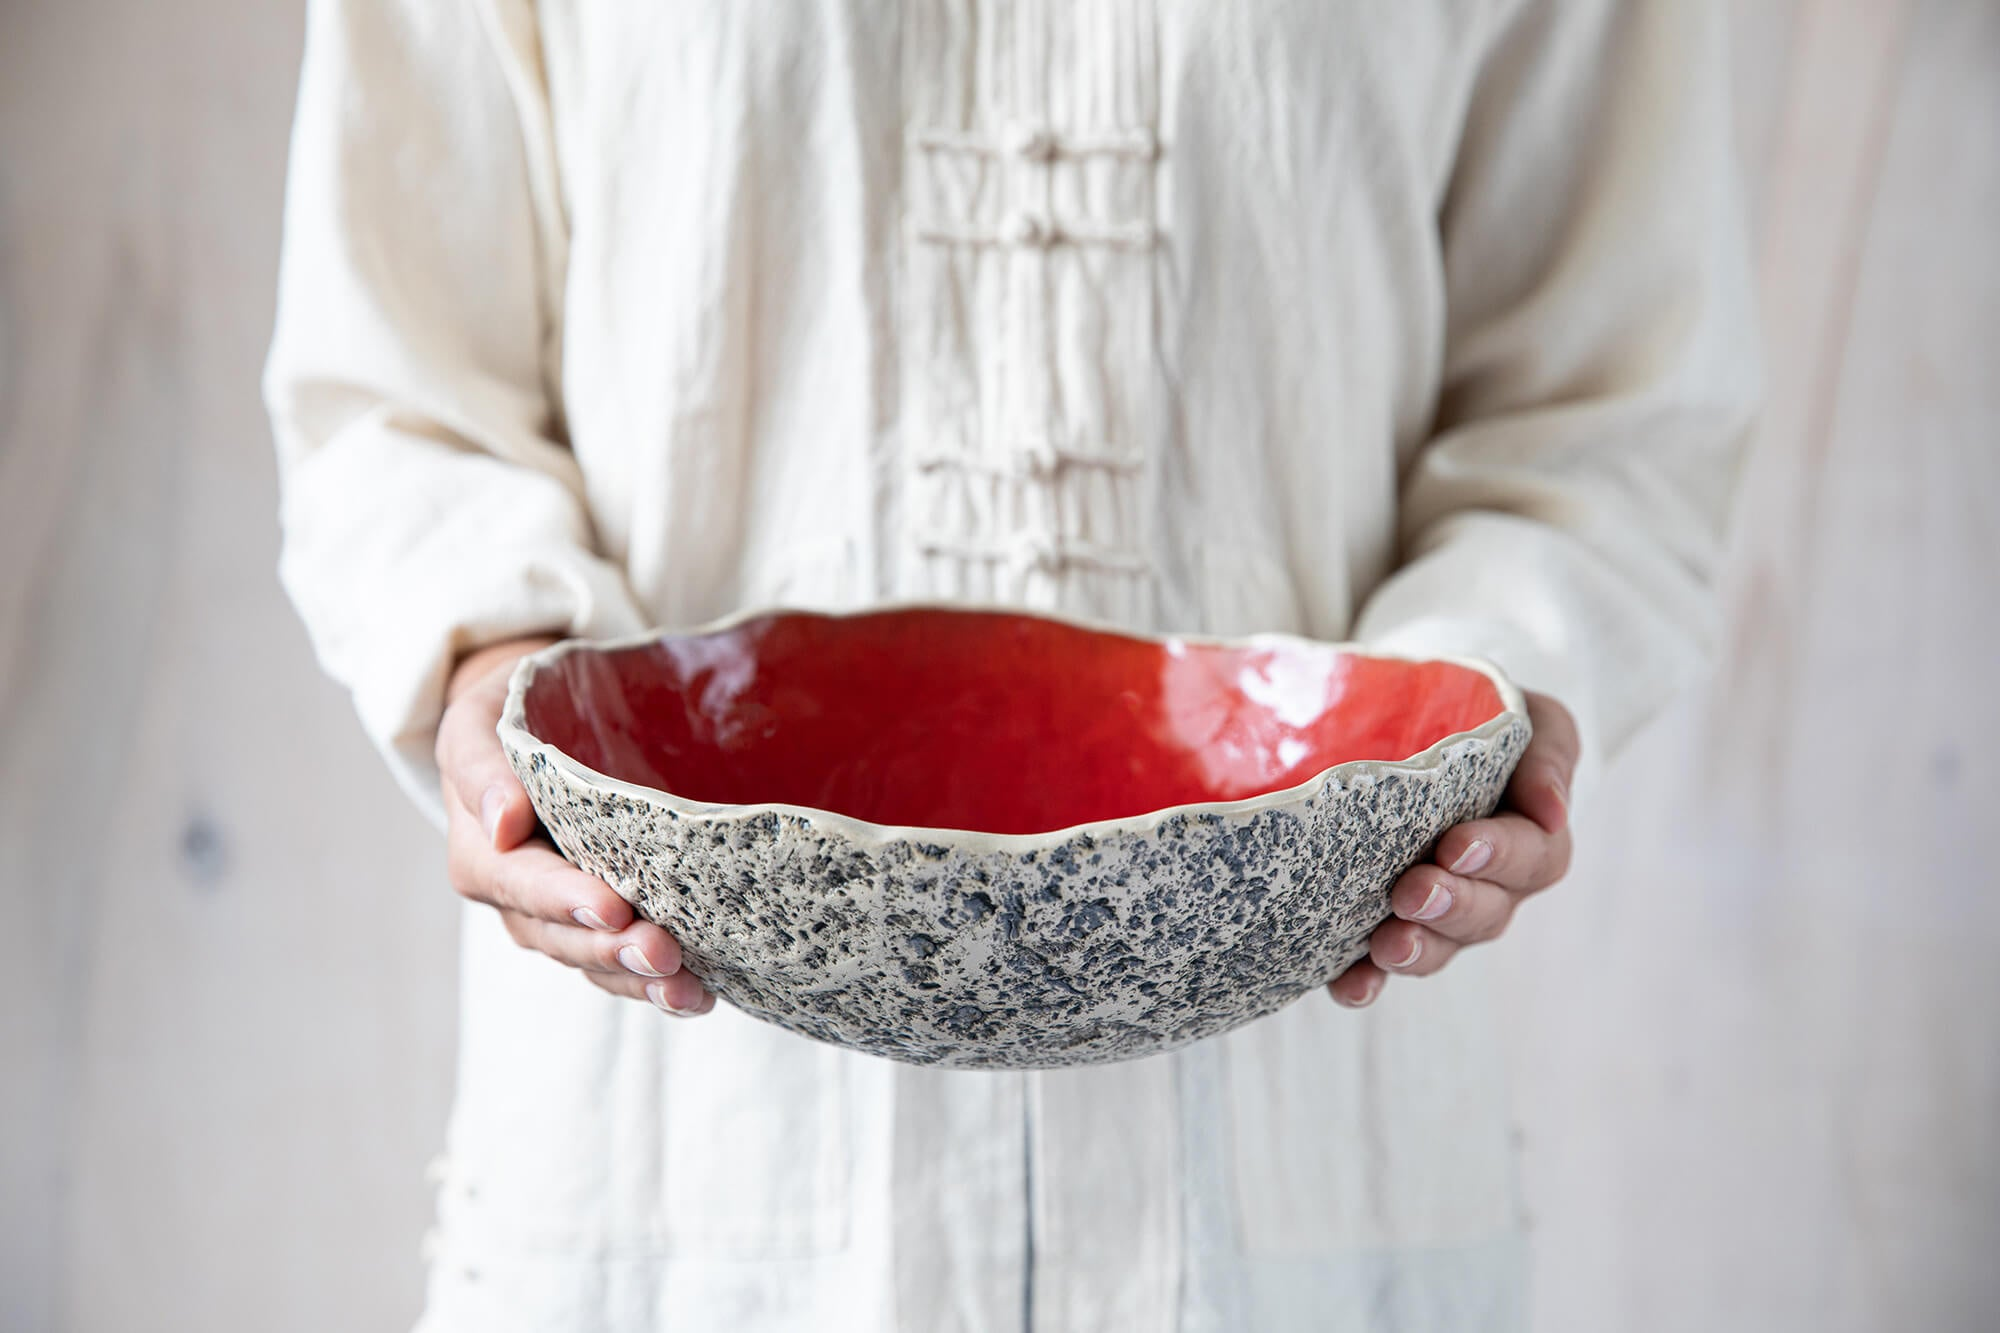 Handcrafted bowls Handmade pottery serving bowls